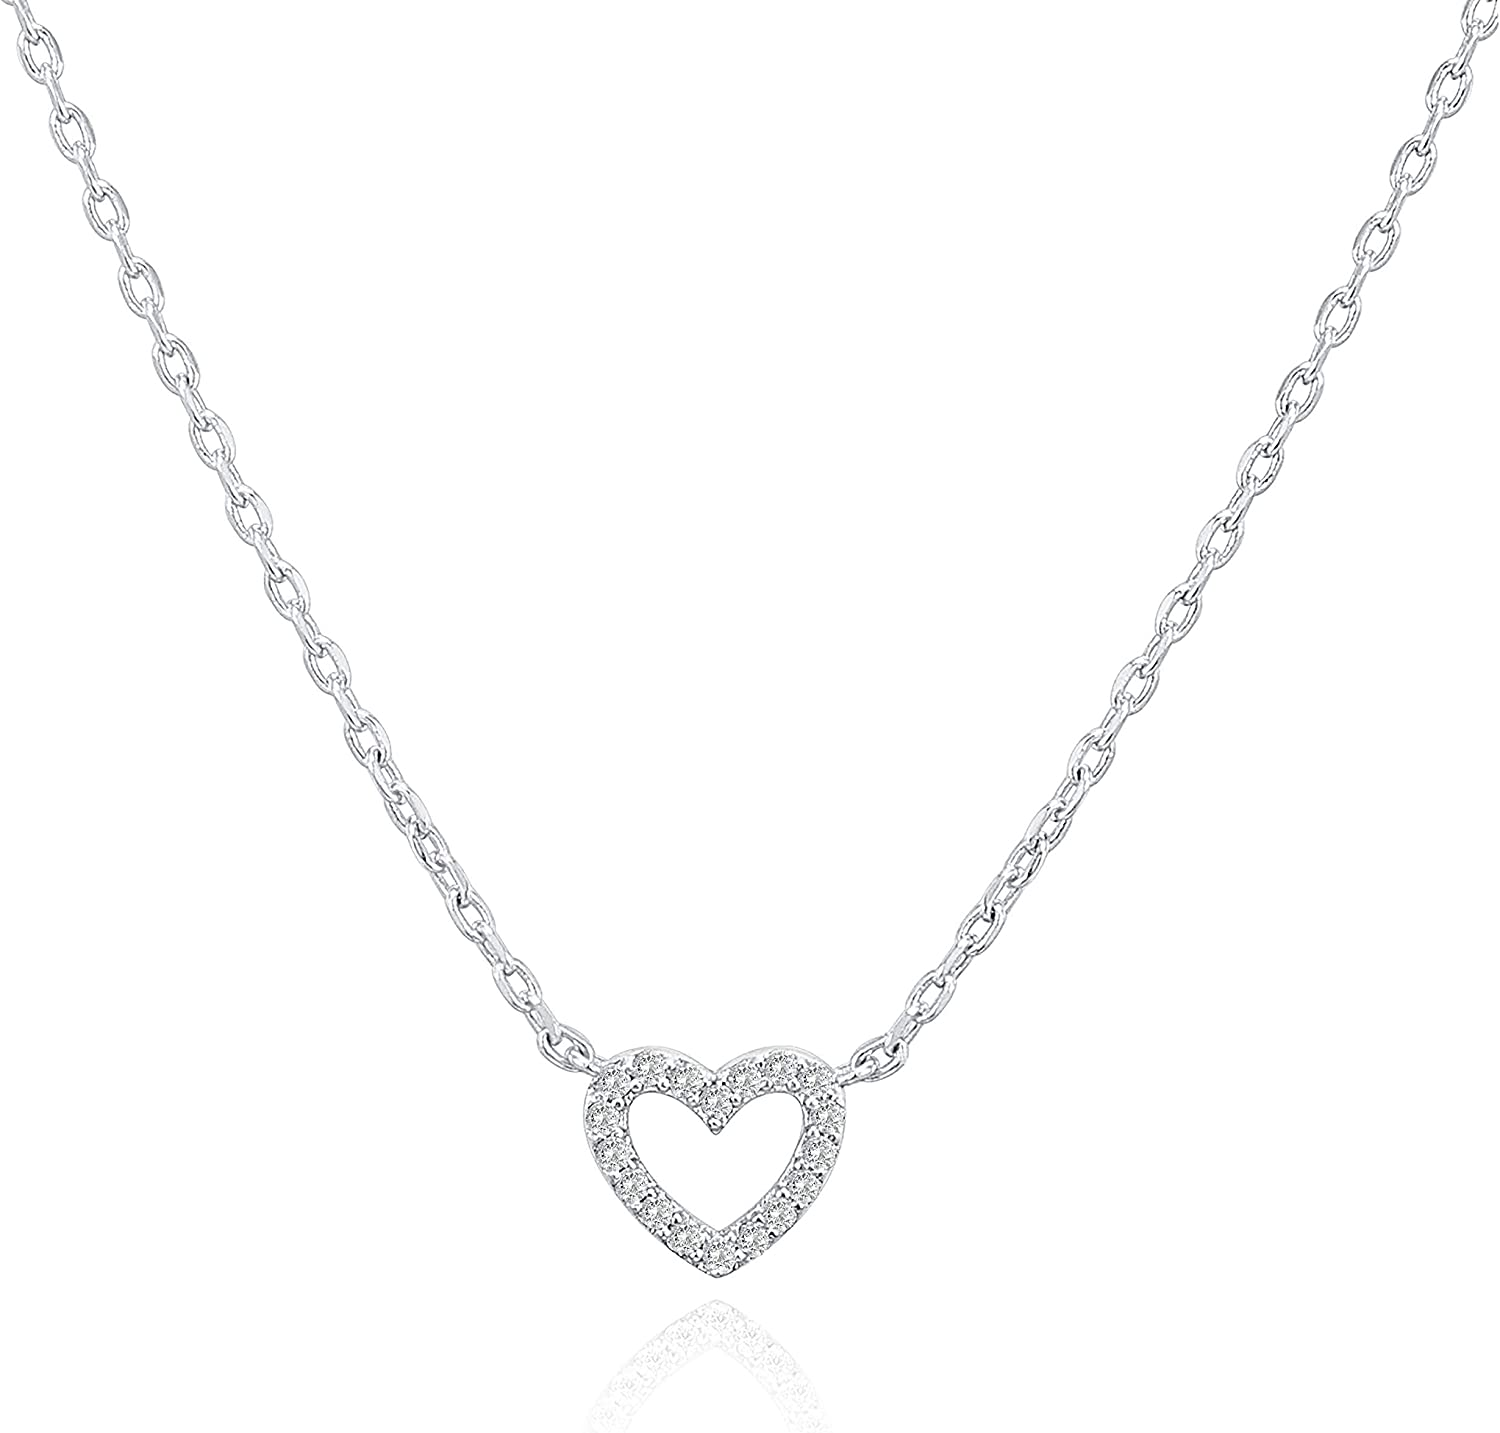 PAVOI 14K Gold Plated Heart Pendant   Layered Necklaces   Gold Necklaces for Women   18